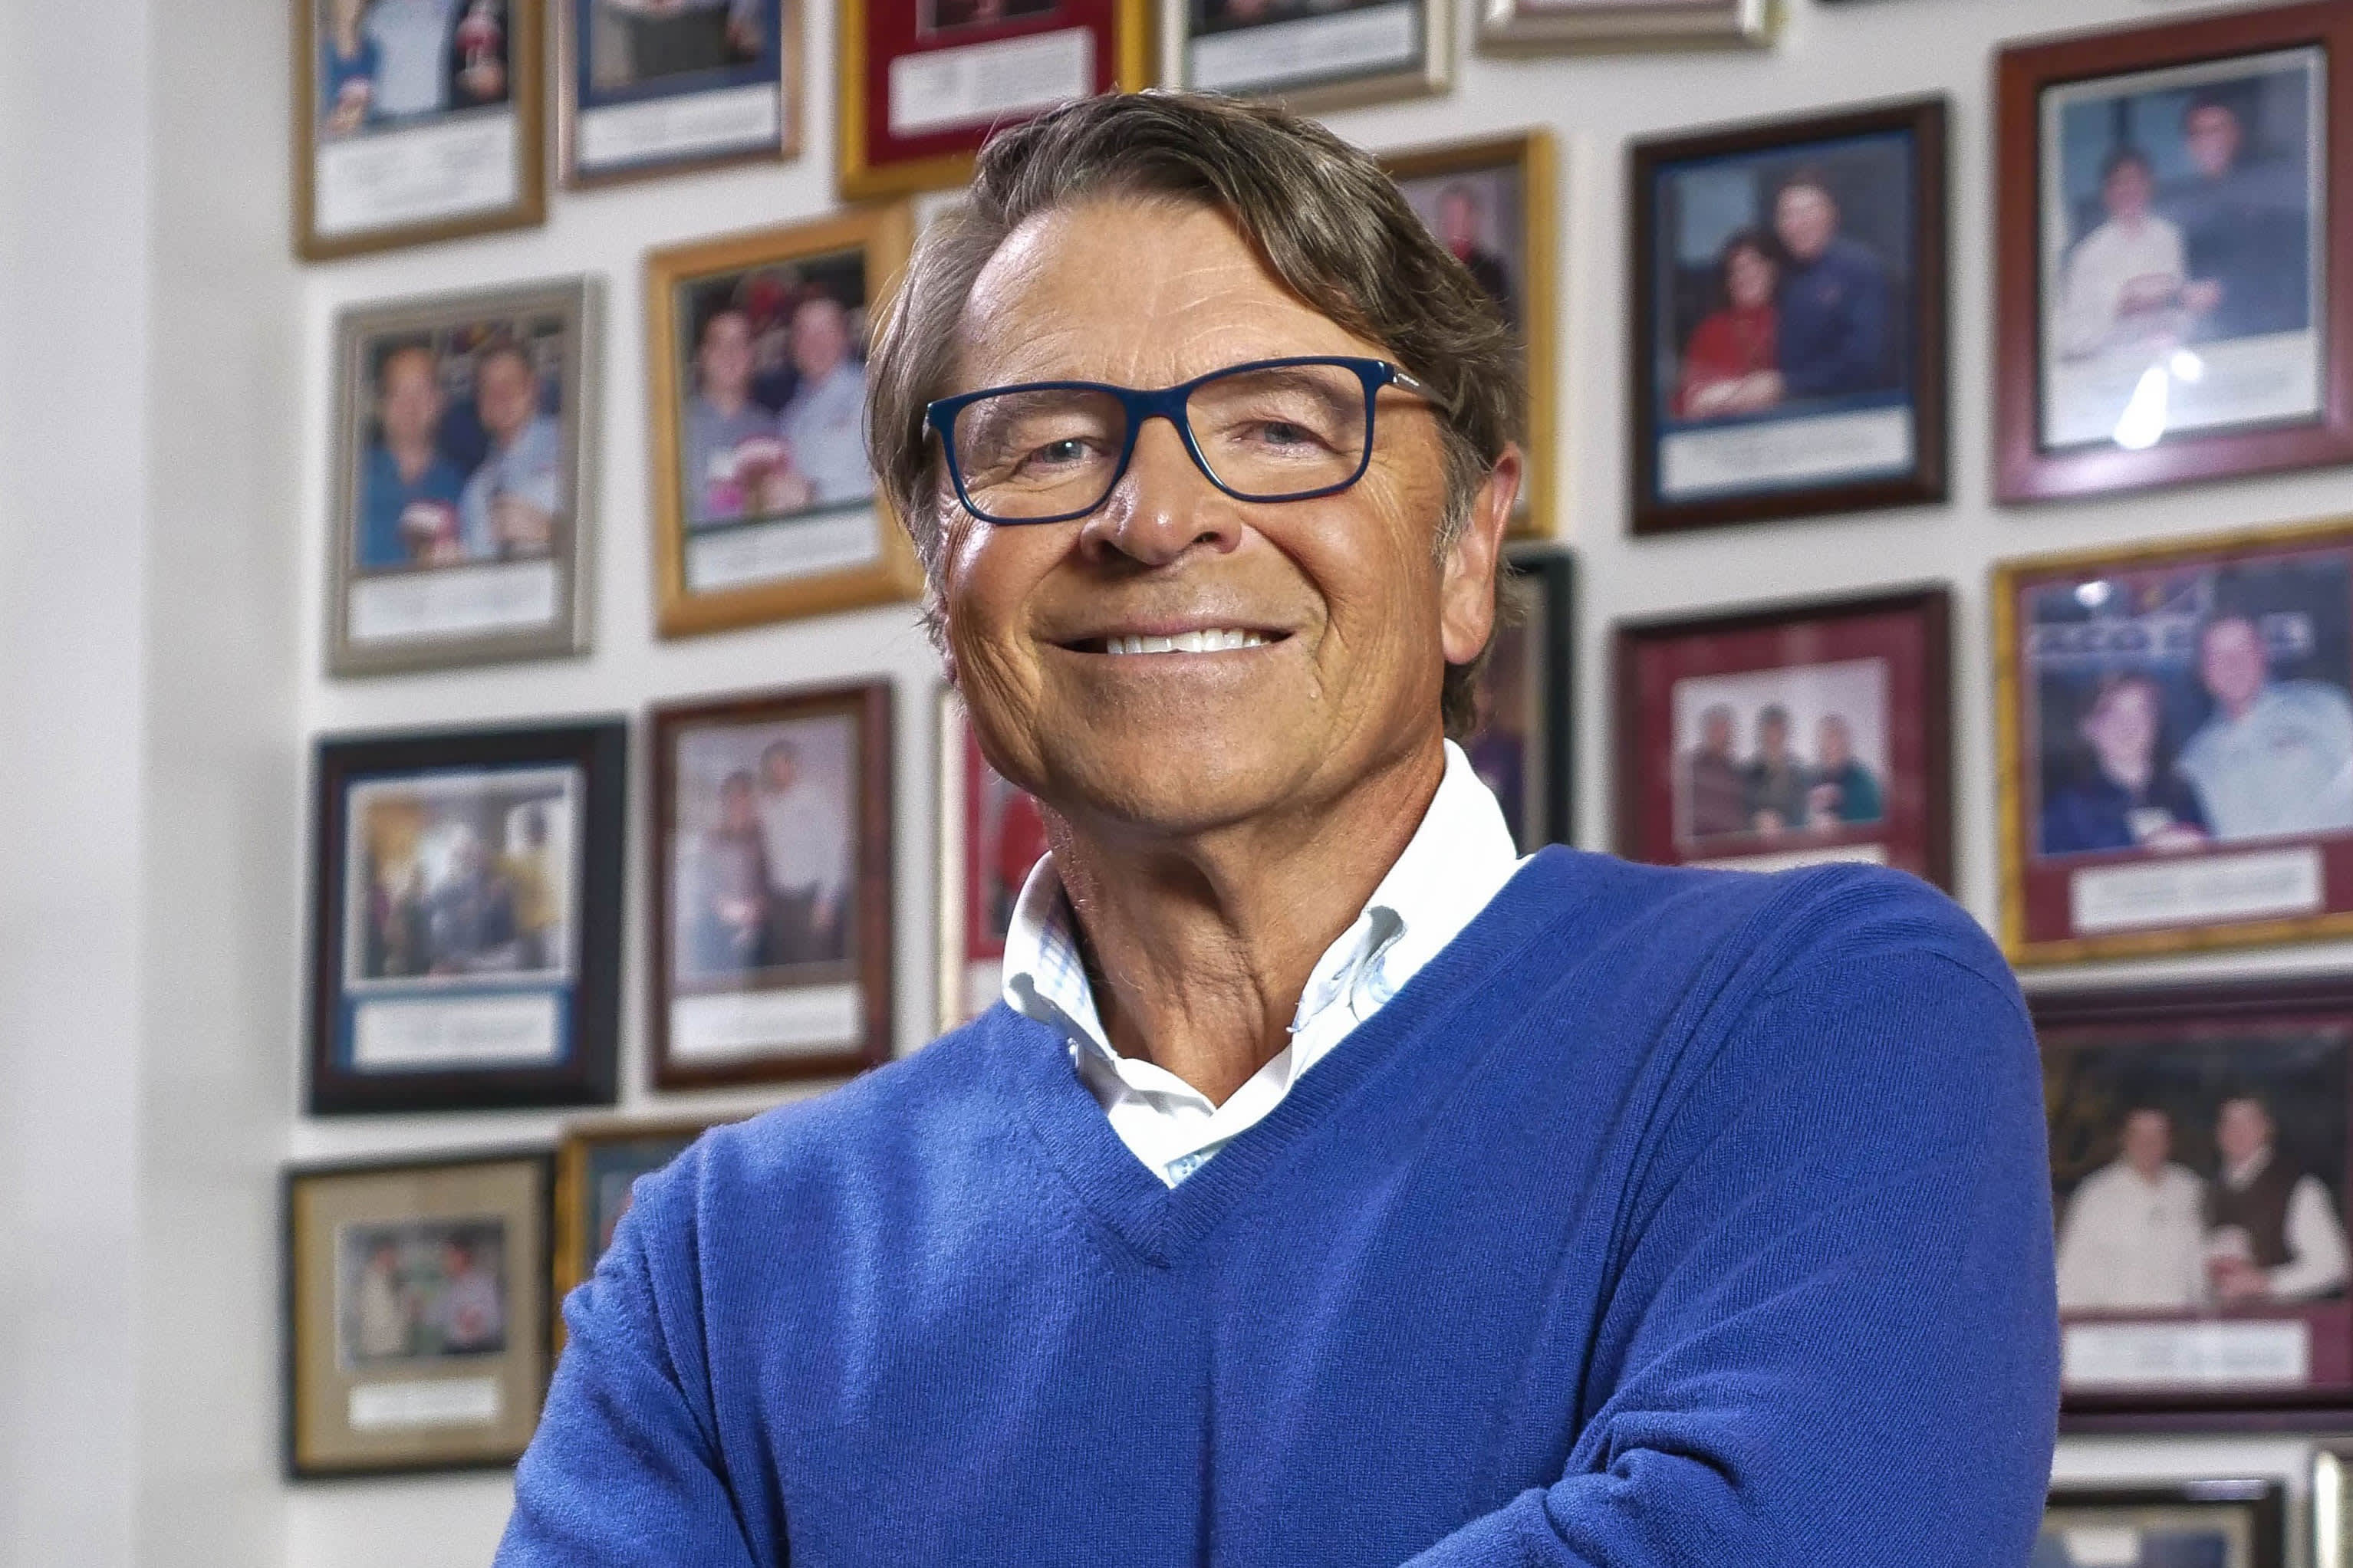 4 key things you should do to grow your career, according to former Yum Brands CEO David Novak